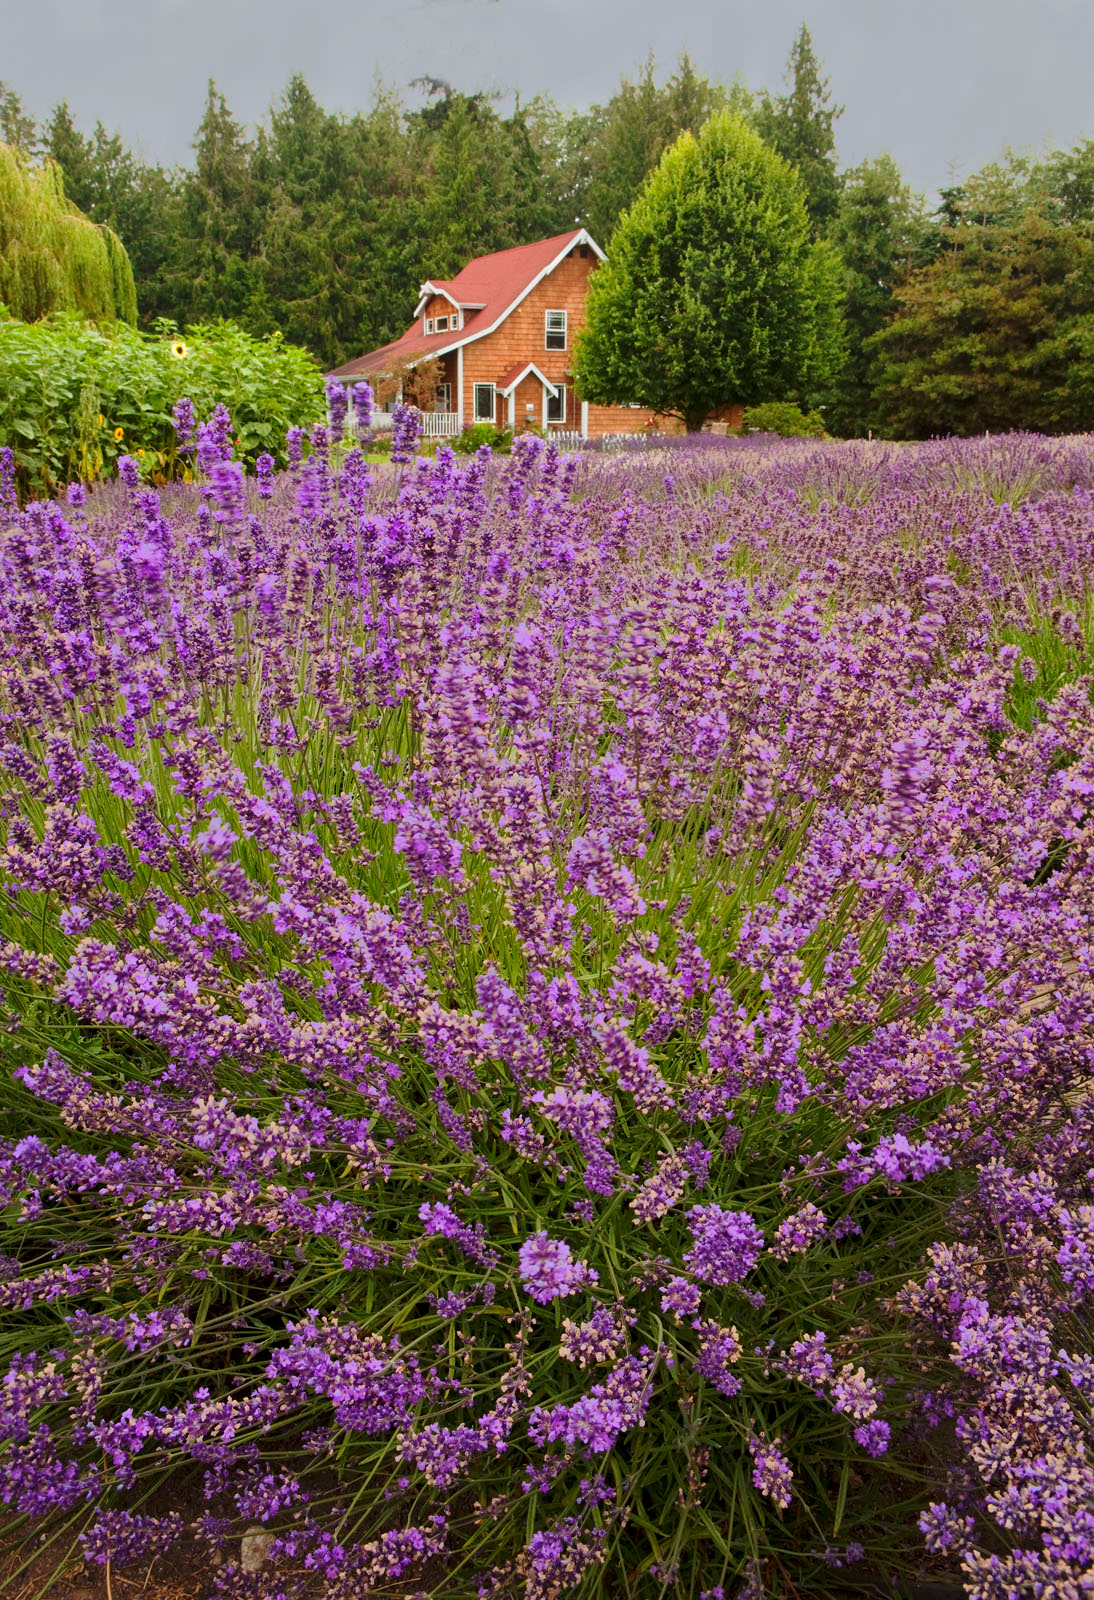 Lavender farm 2, Washington